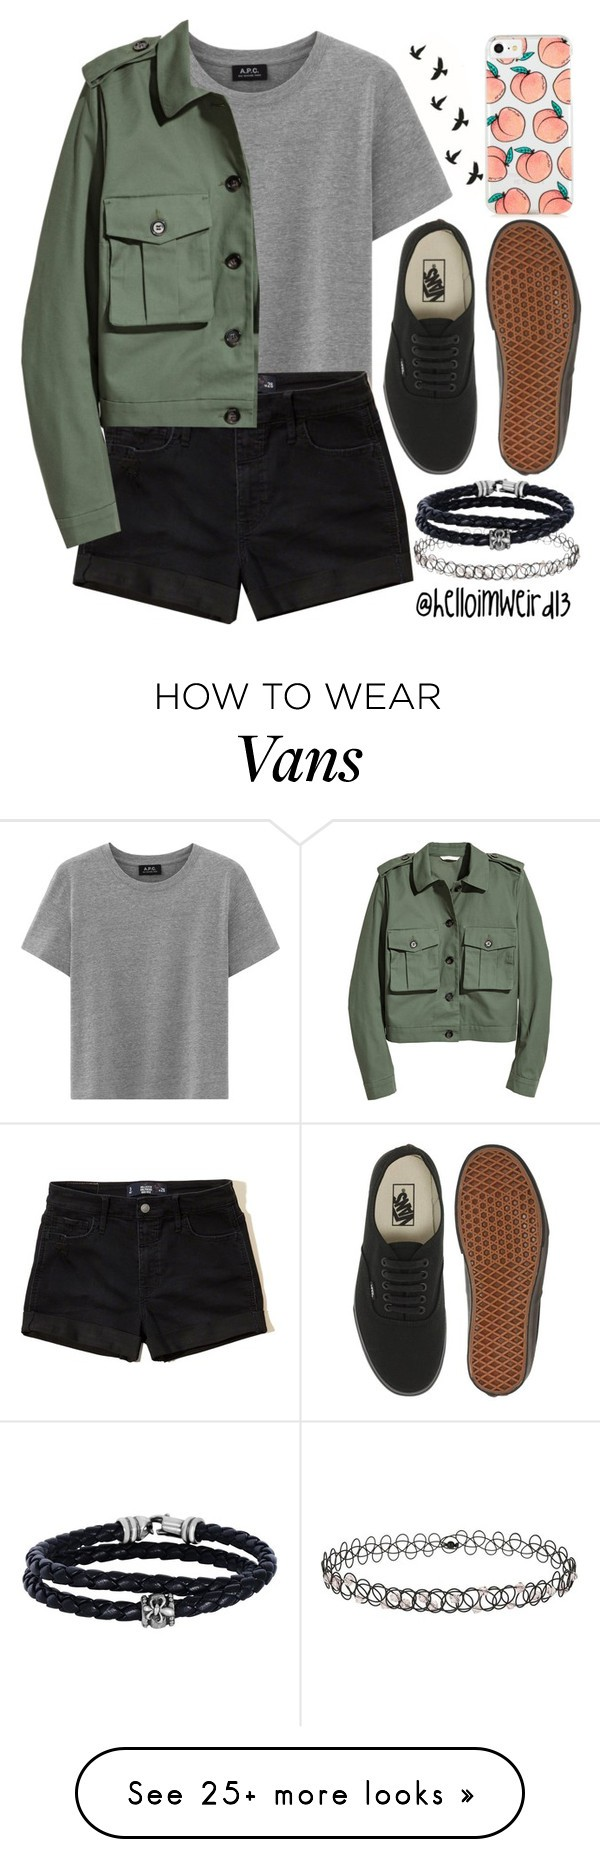 Winters Black Shorts Outfits